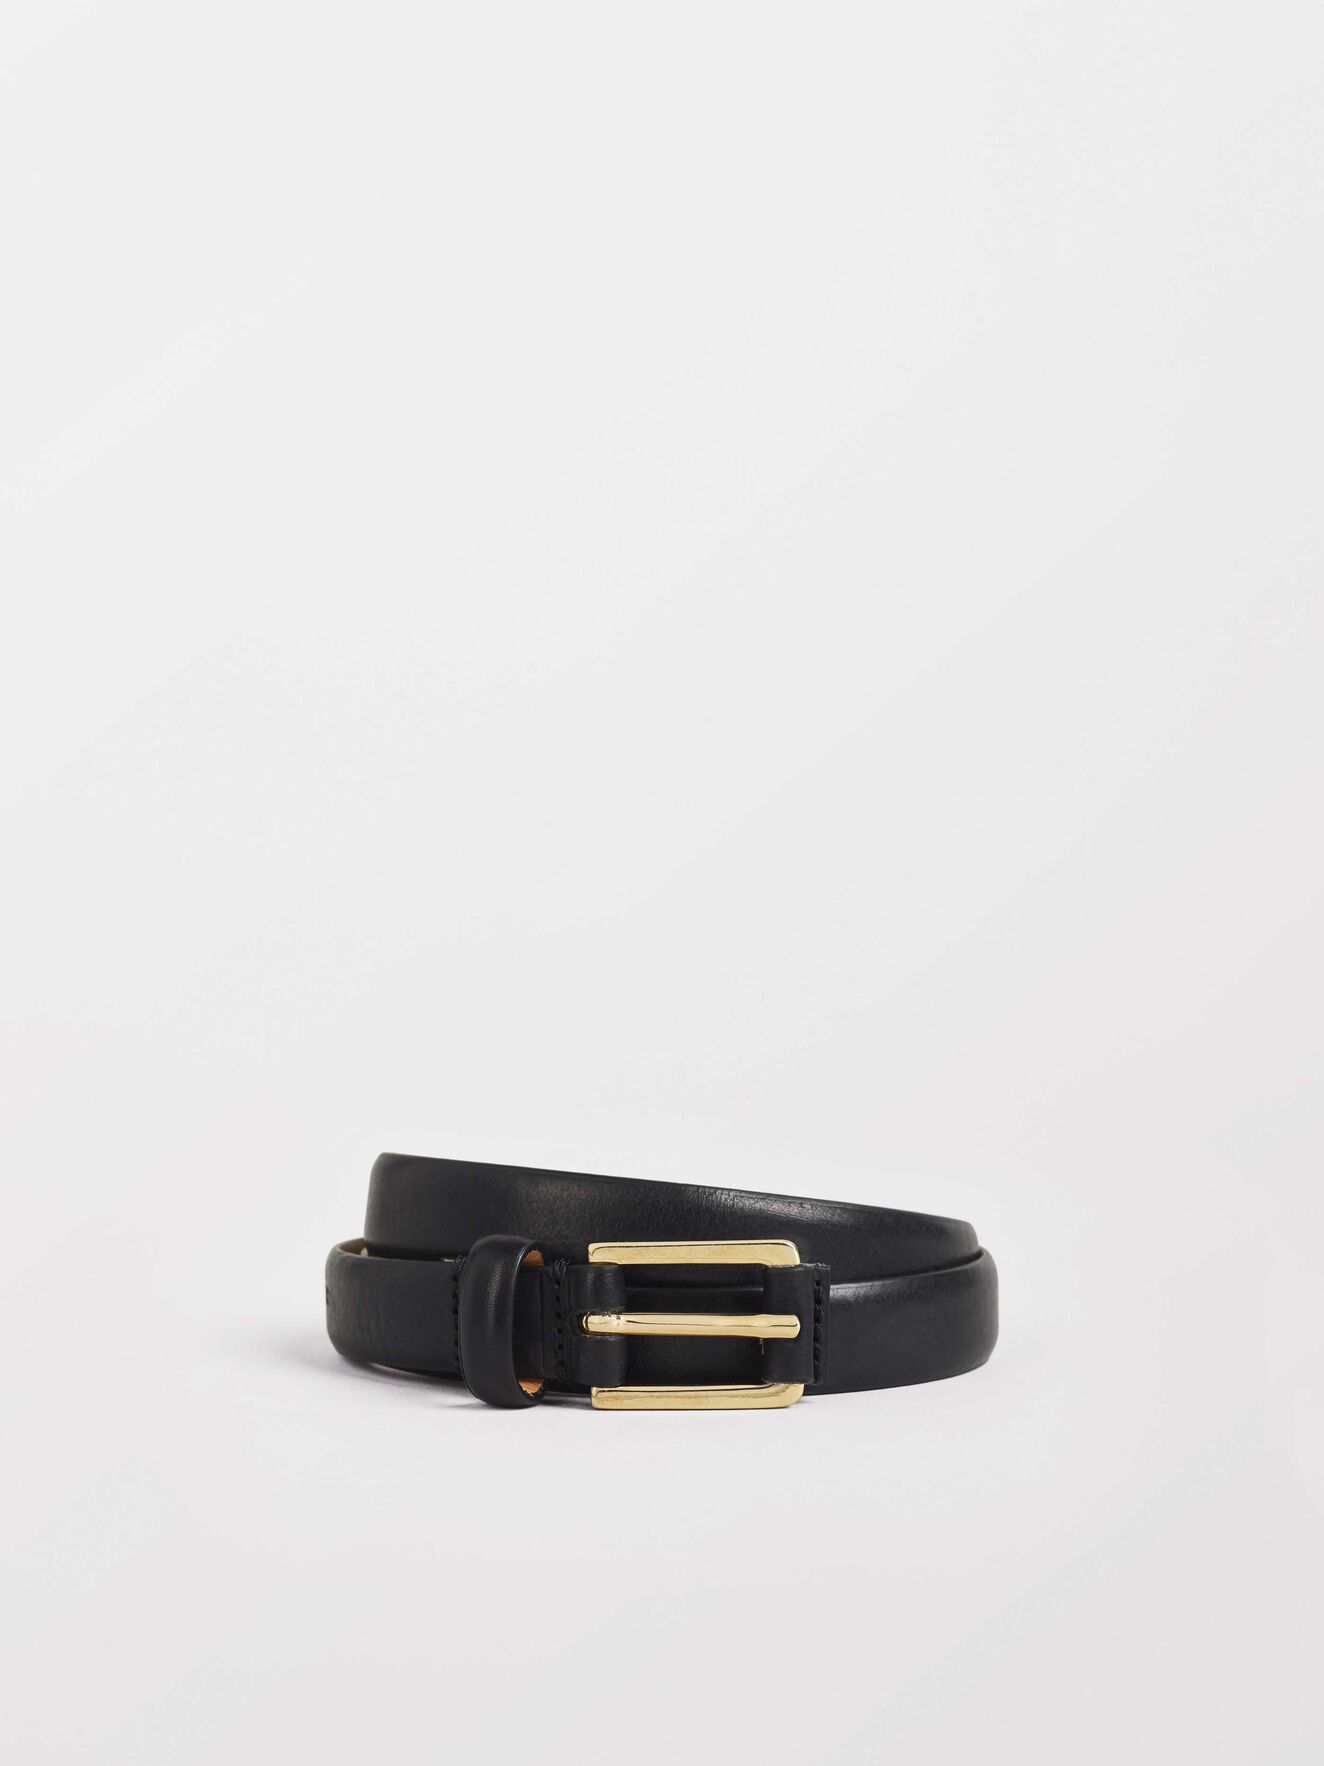 Tebilda Belt in Black from Tiger of Sweden